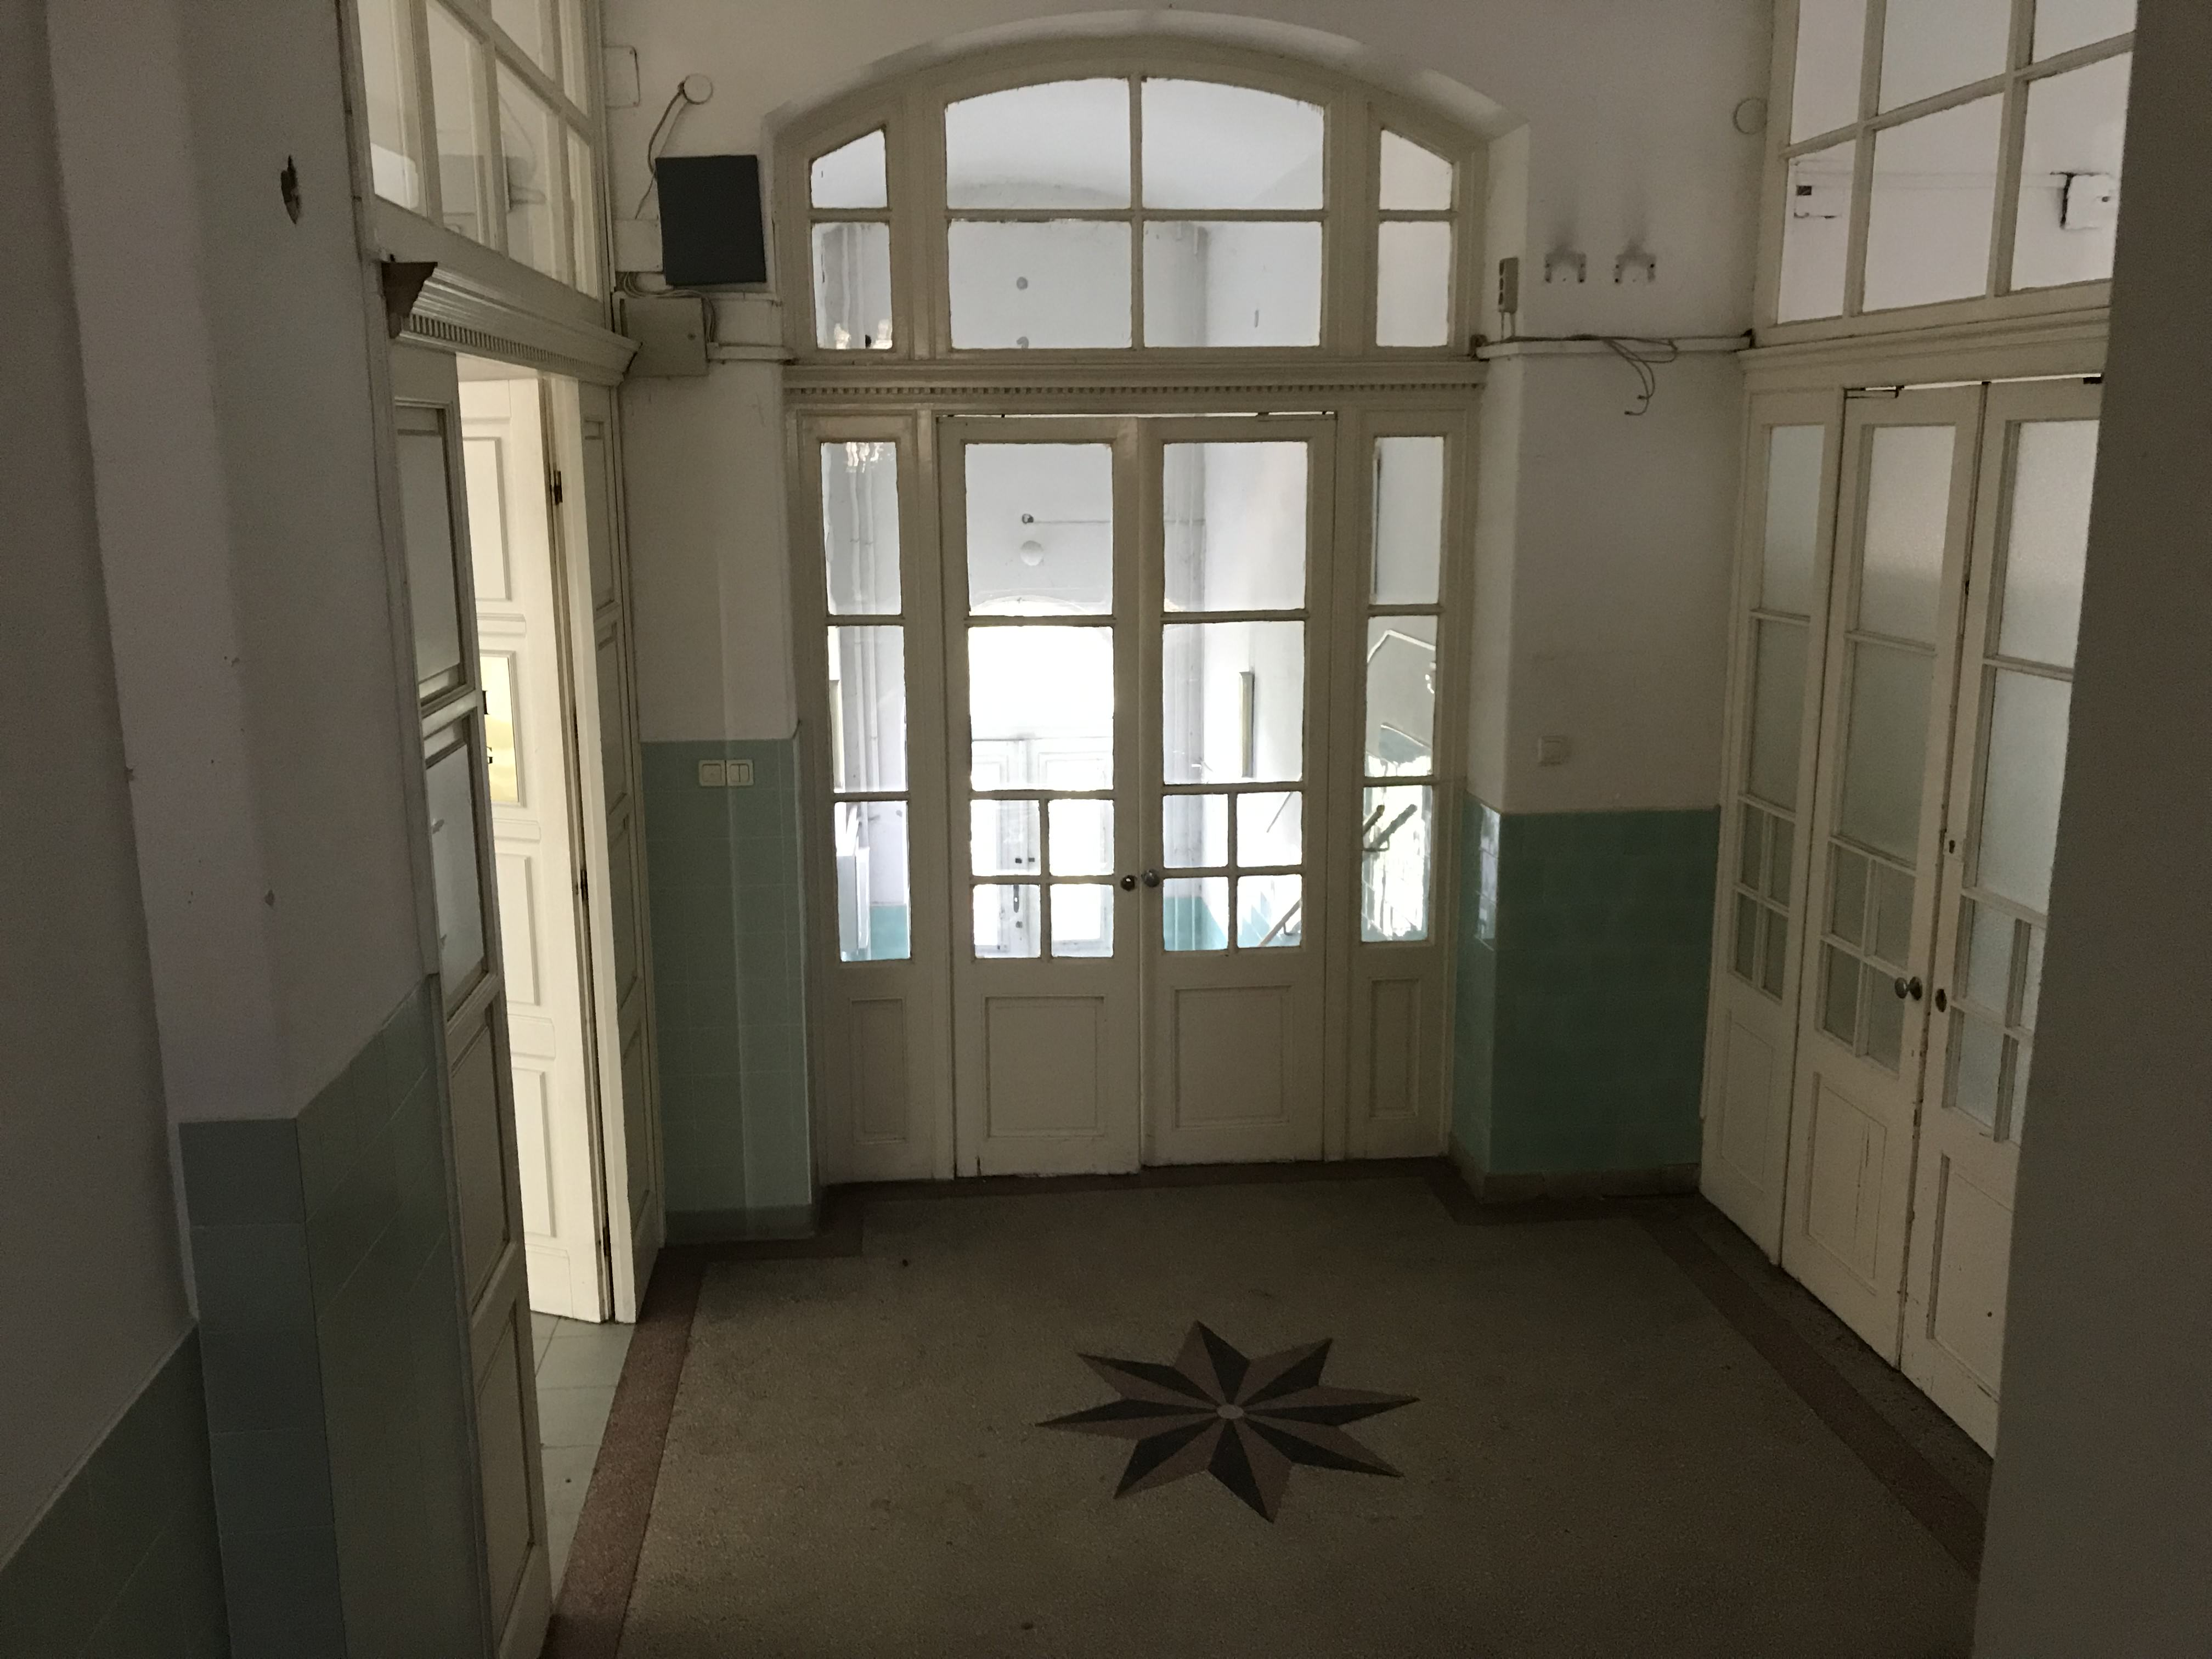 Film Location Hospital Pécs